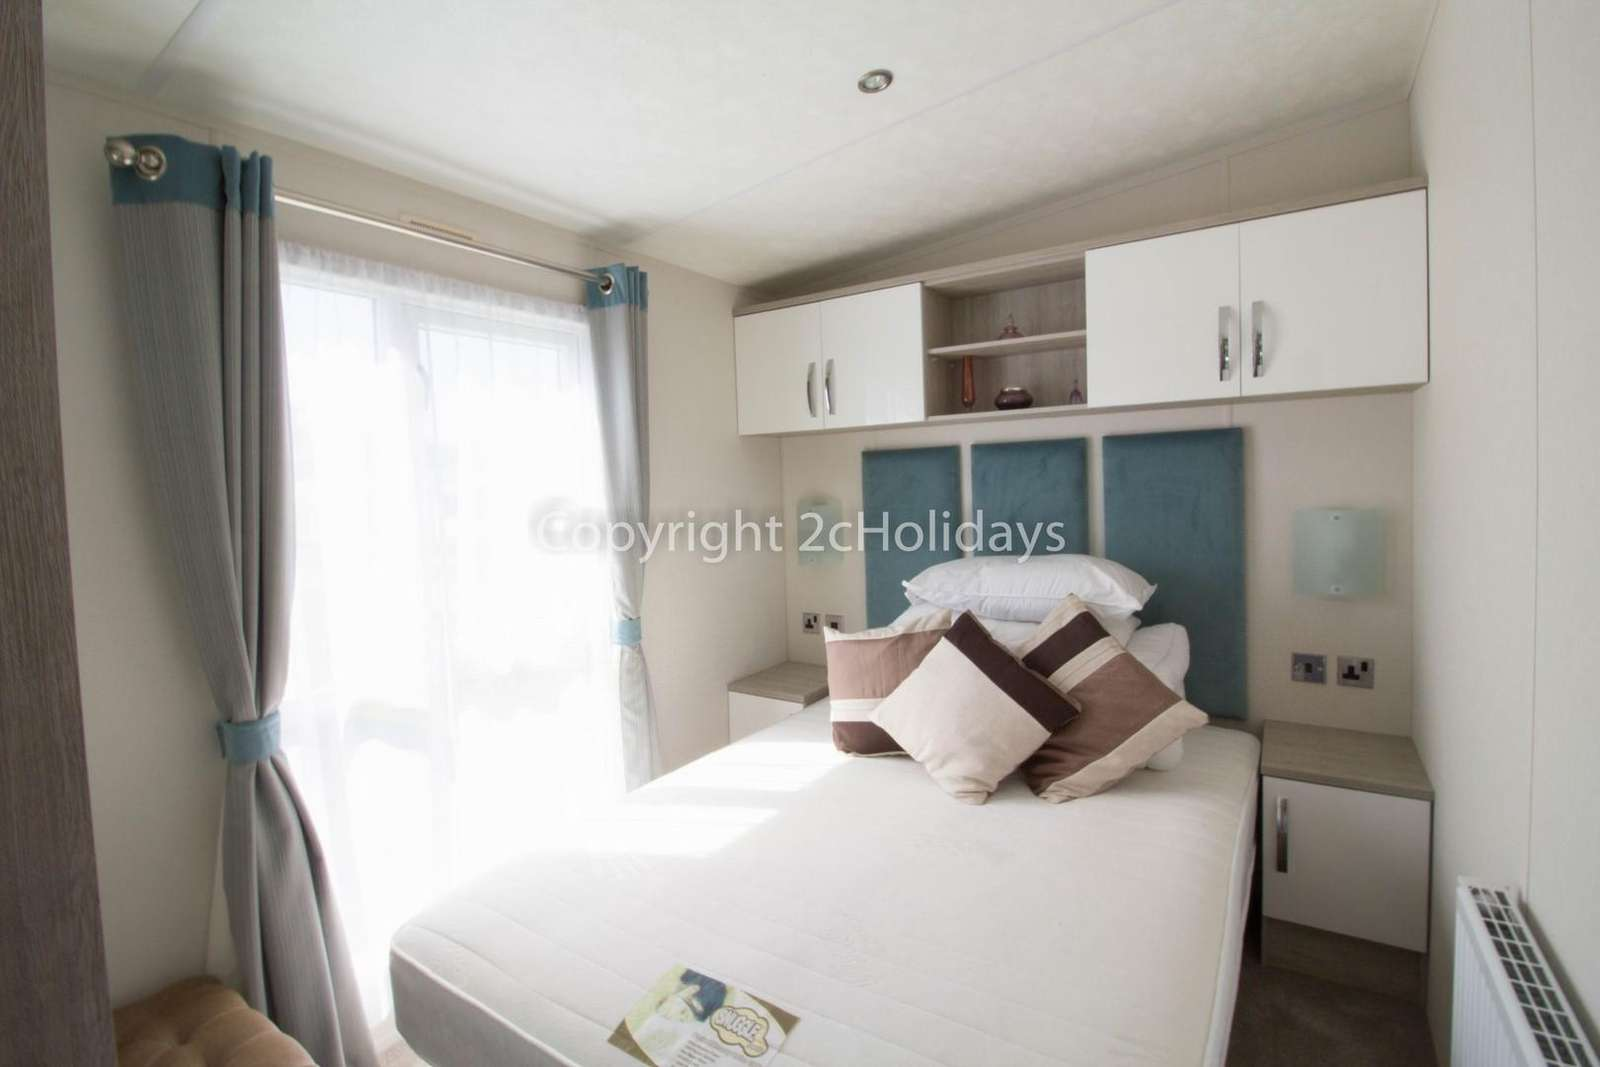 We ensure that all our a holiday homes are cleaned to a high standard